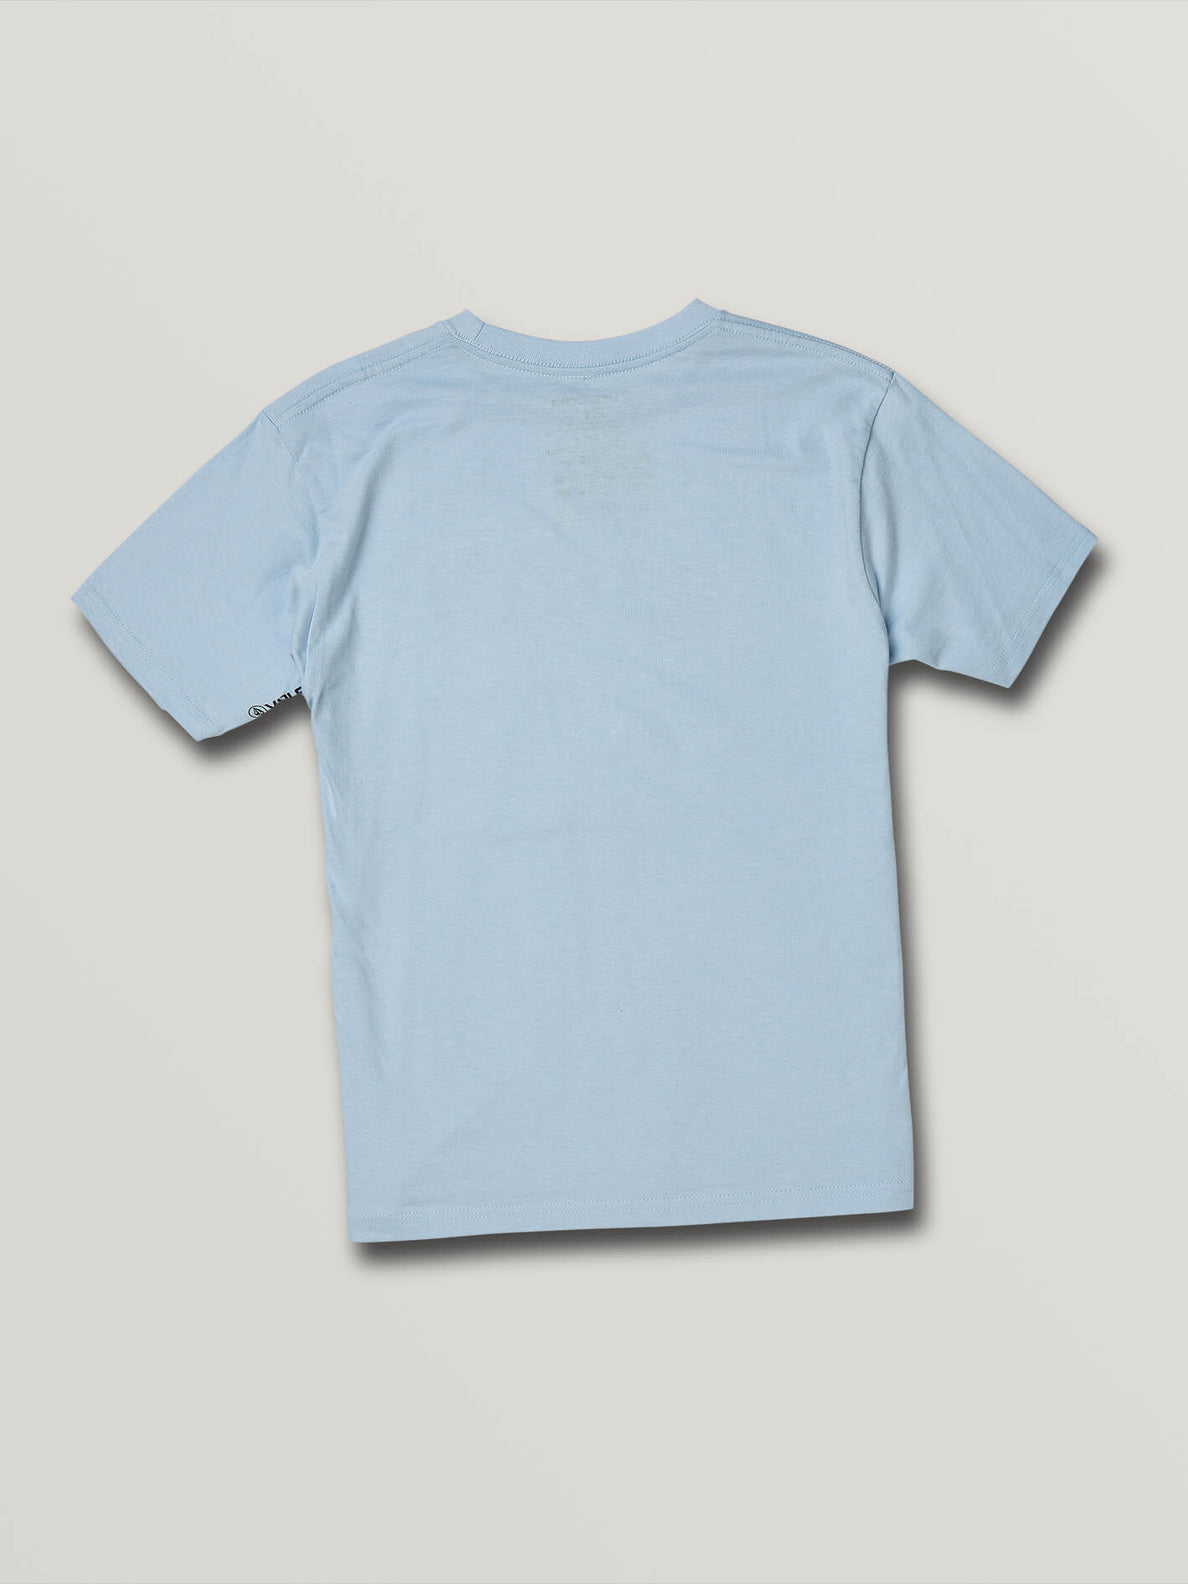 Boys Youth New Euro Short Sleeve Tee - Powder Blue